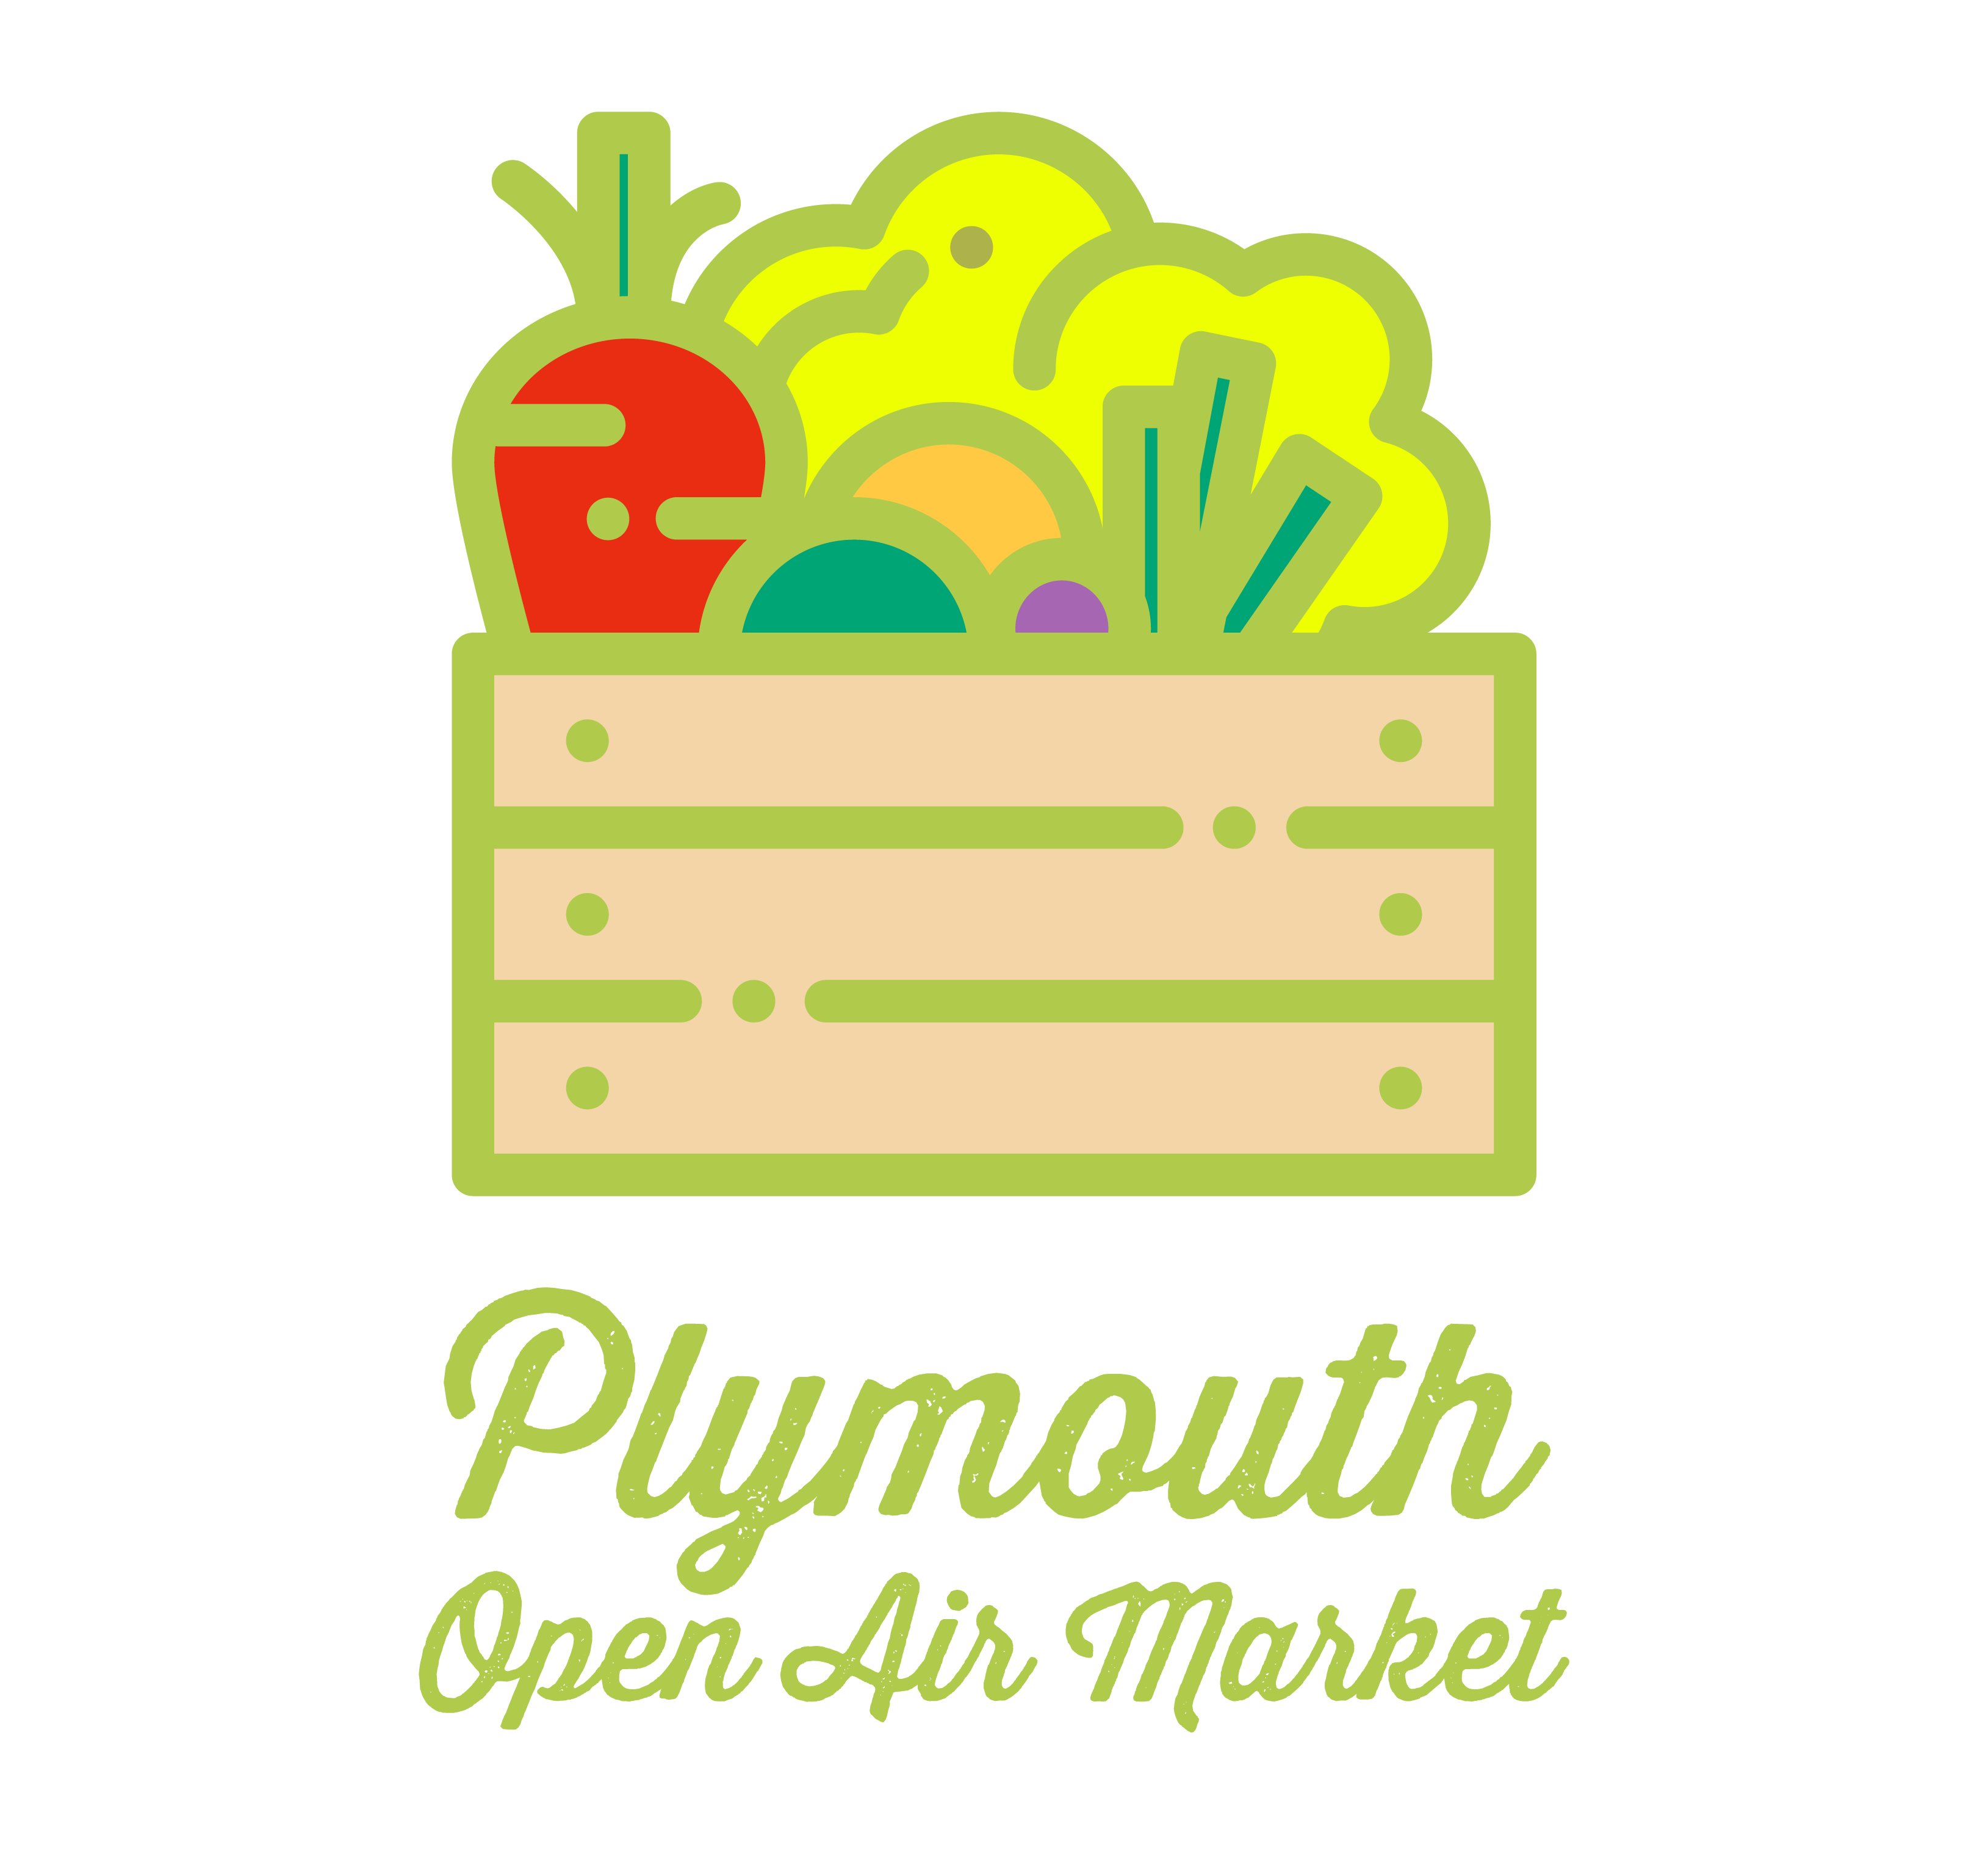 Contact us plymouth. Market clipart open air market